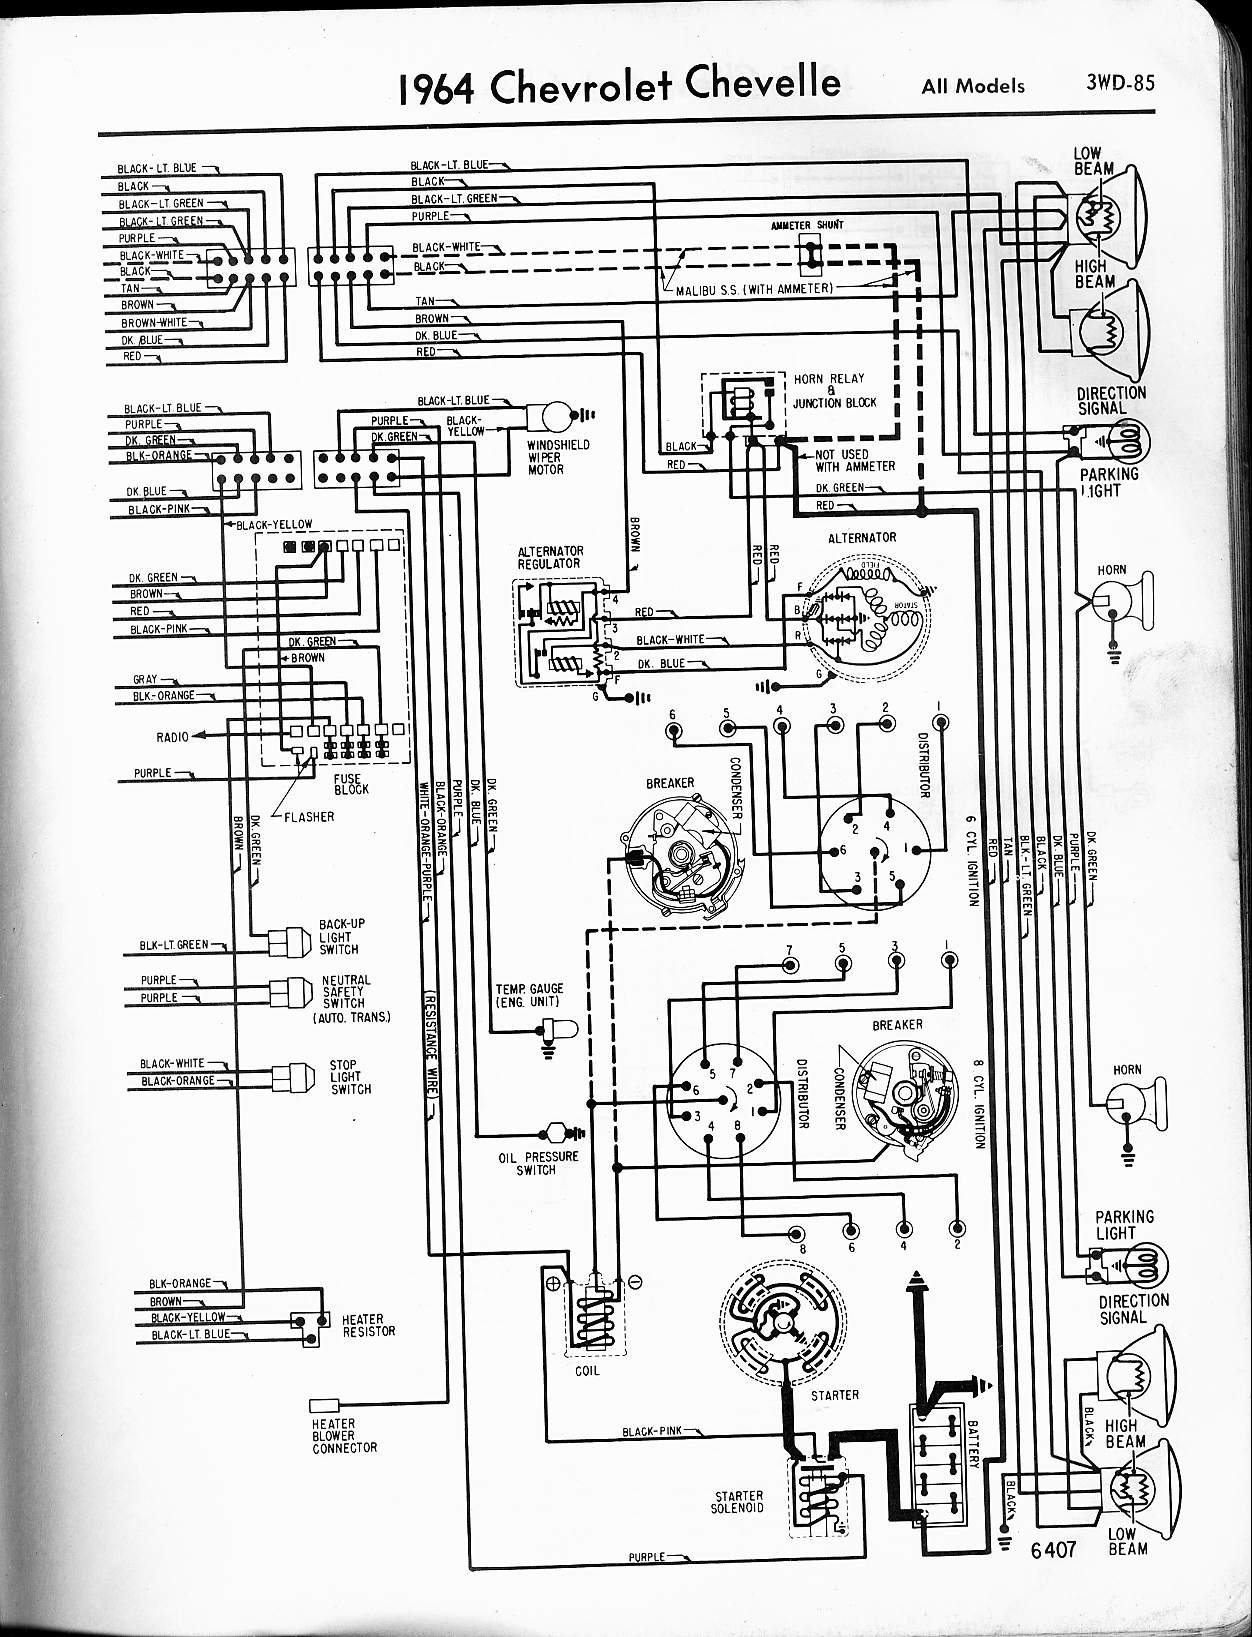 chevy diagrams rh wiring wizard com 64 Chevelle Wiring Diagram 64 Chevelle  Wiring Diagram